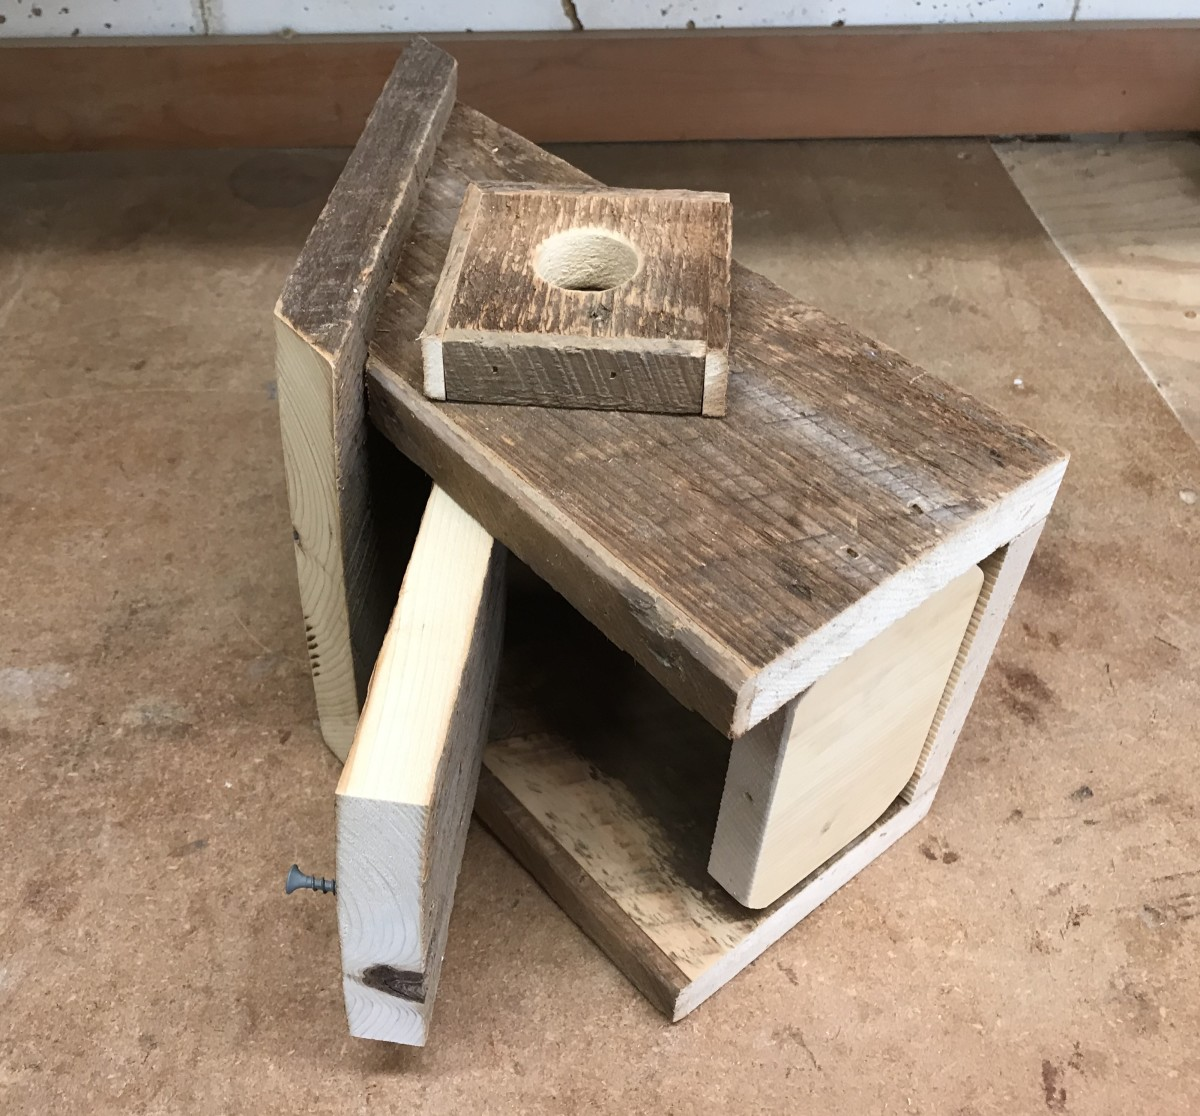 The swinging door. This pivoting door makes it easy to clean out the nest box.